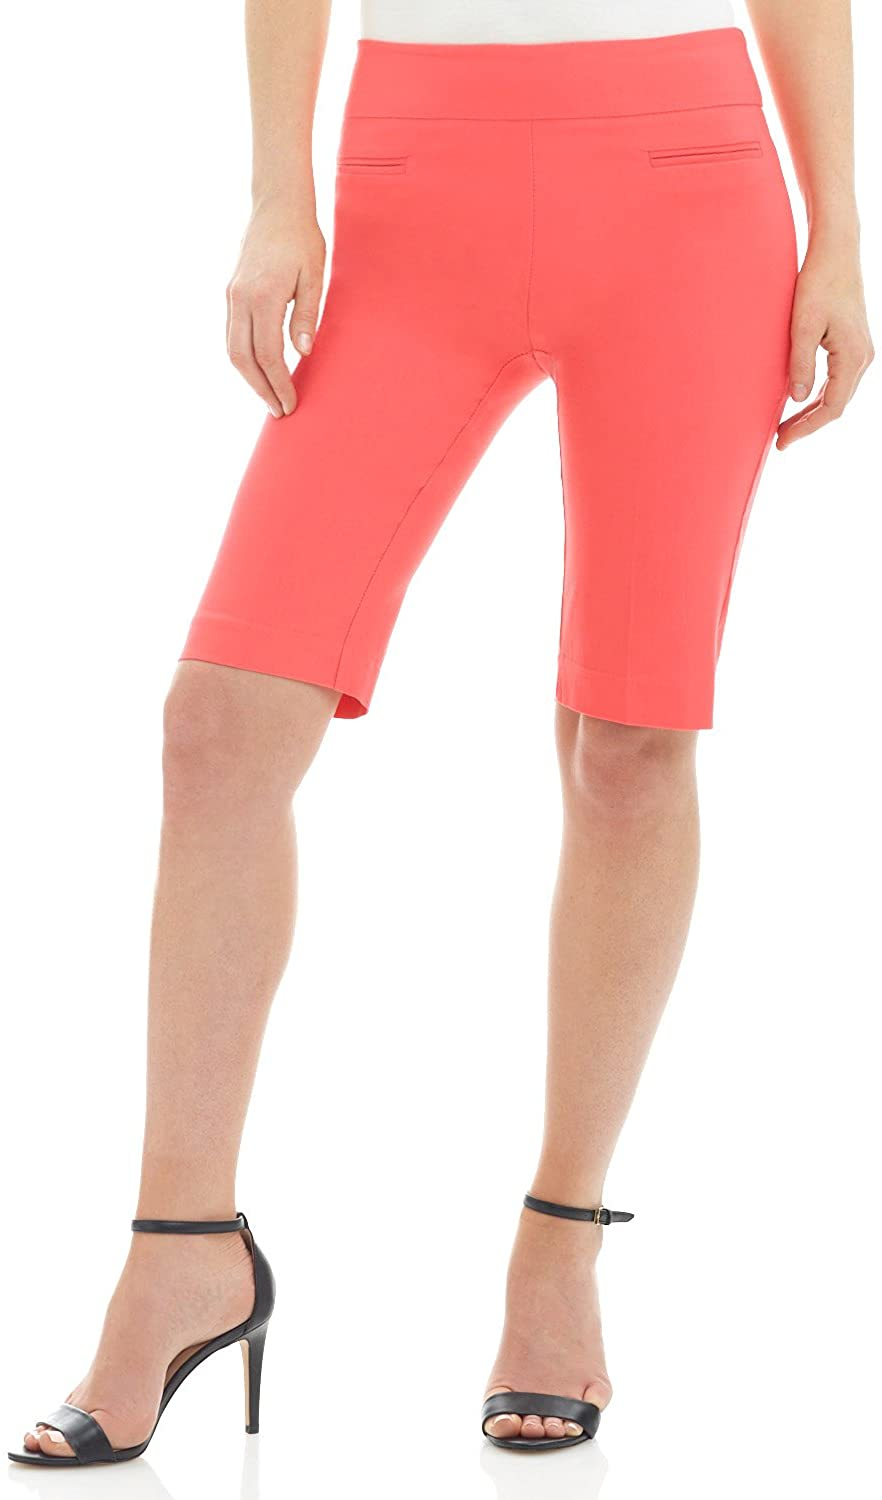 Rekucci Women's Ease into Comfort Pull-On Modern City Shorts